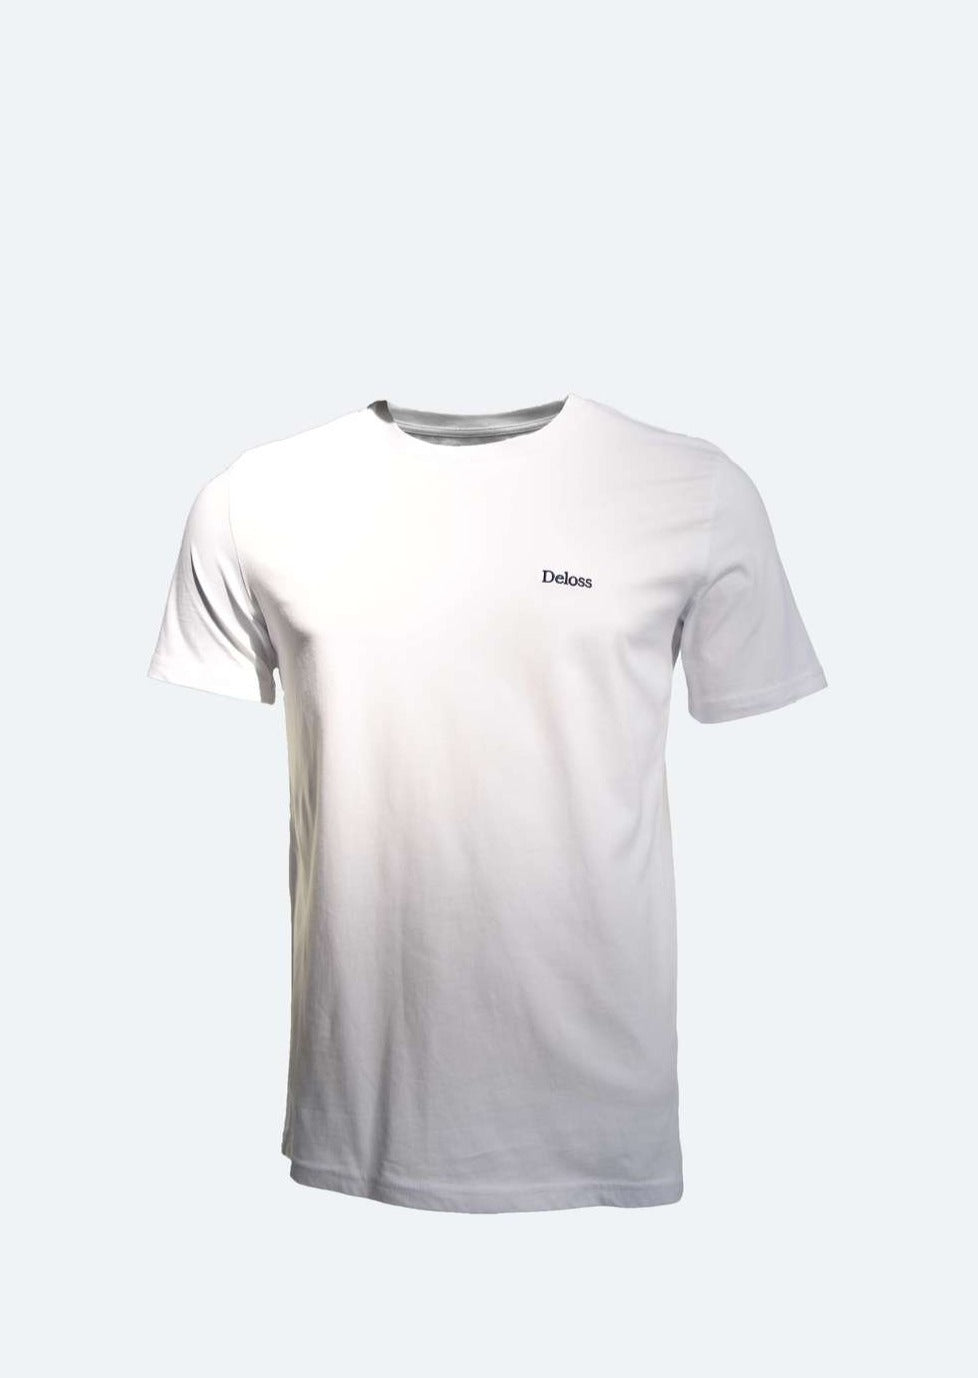 Deloss Summer Collection T-Shirt - Weiß